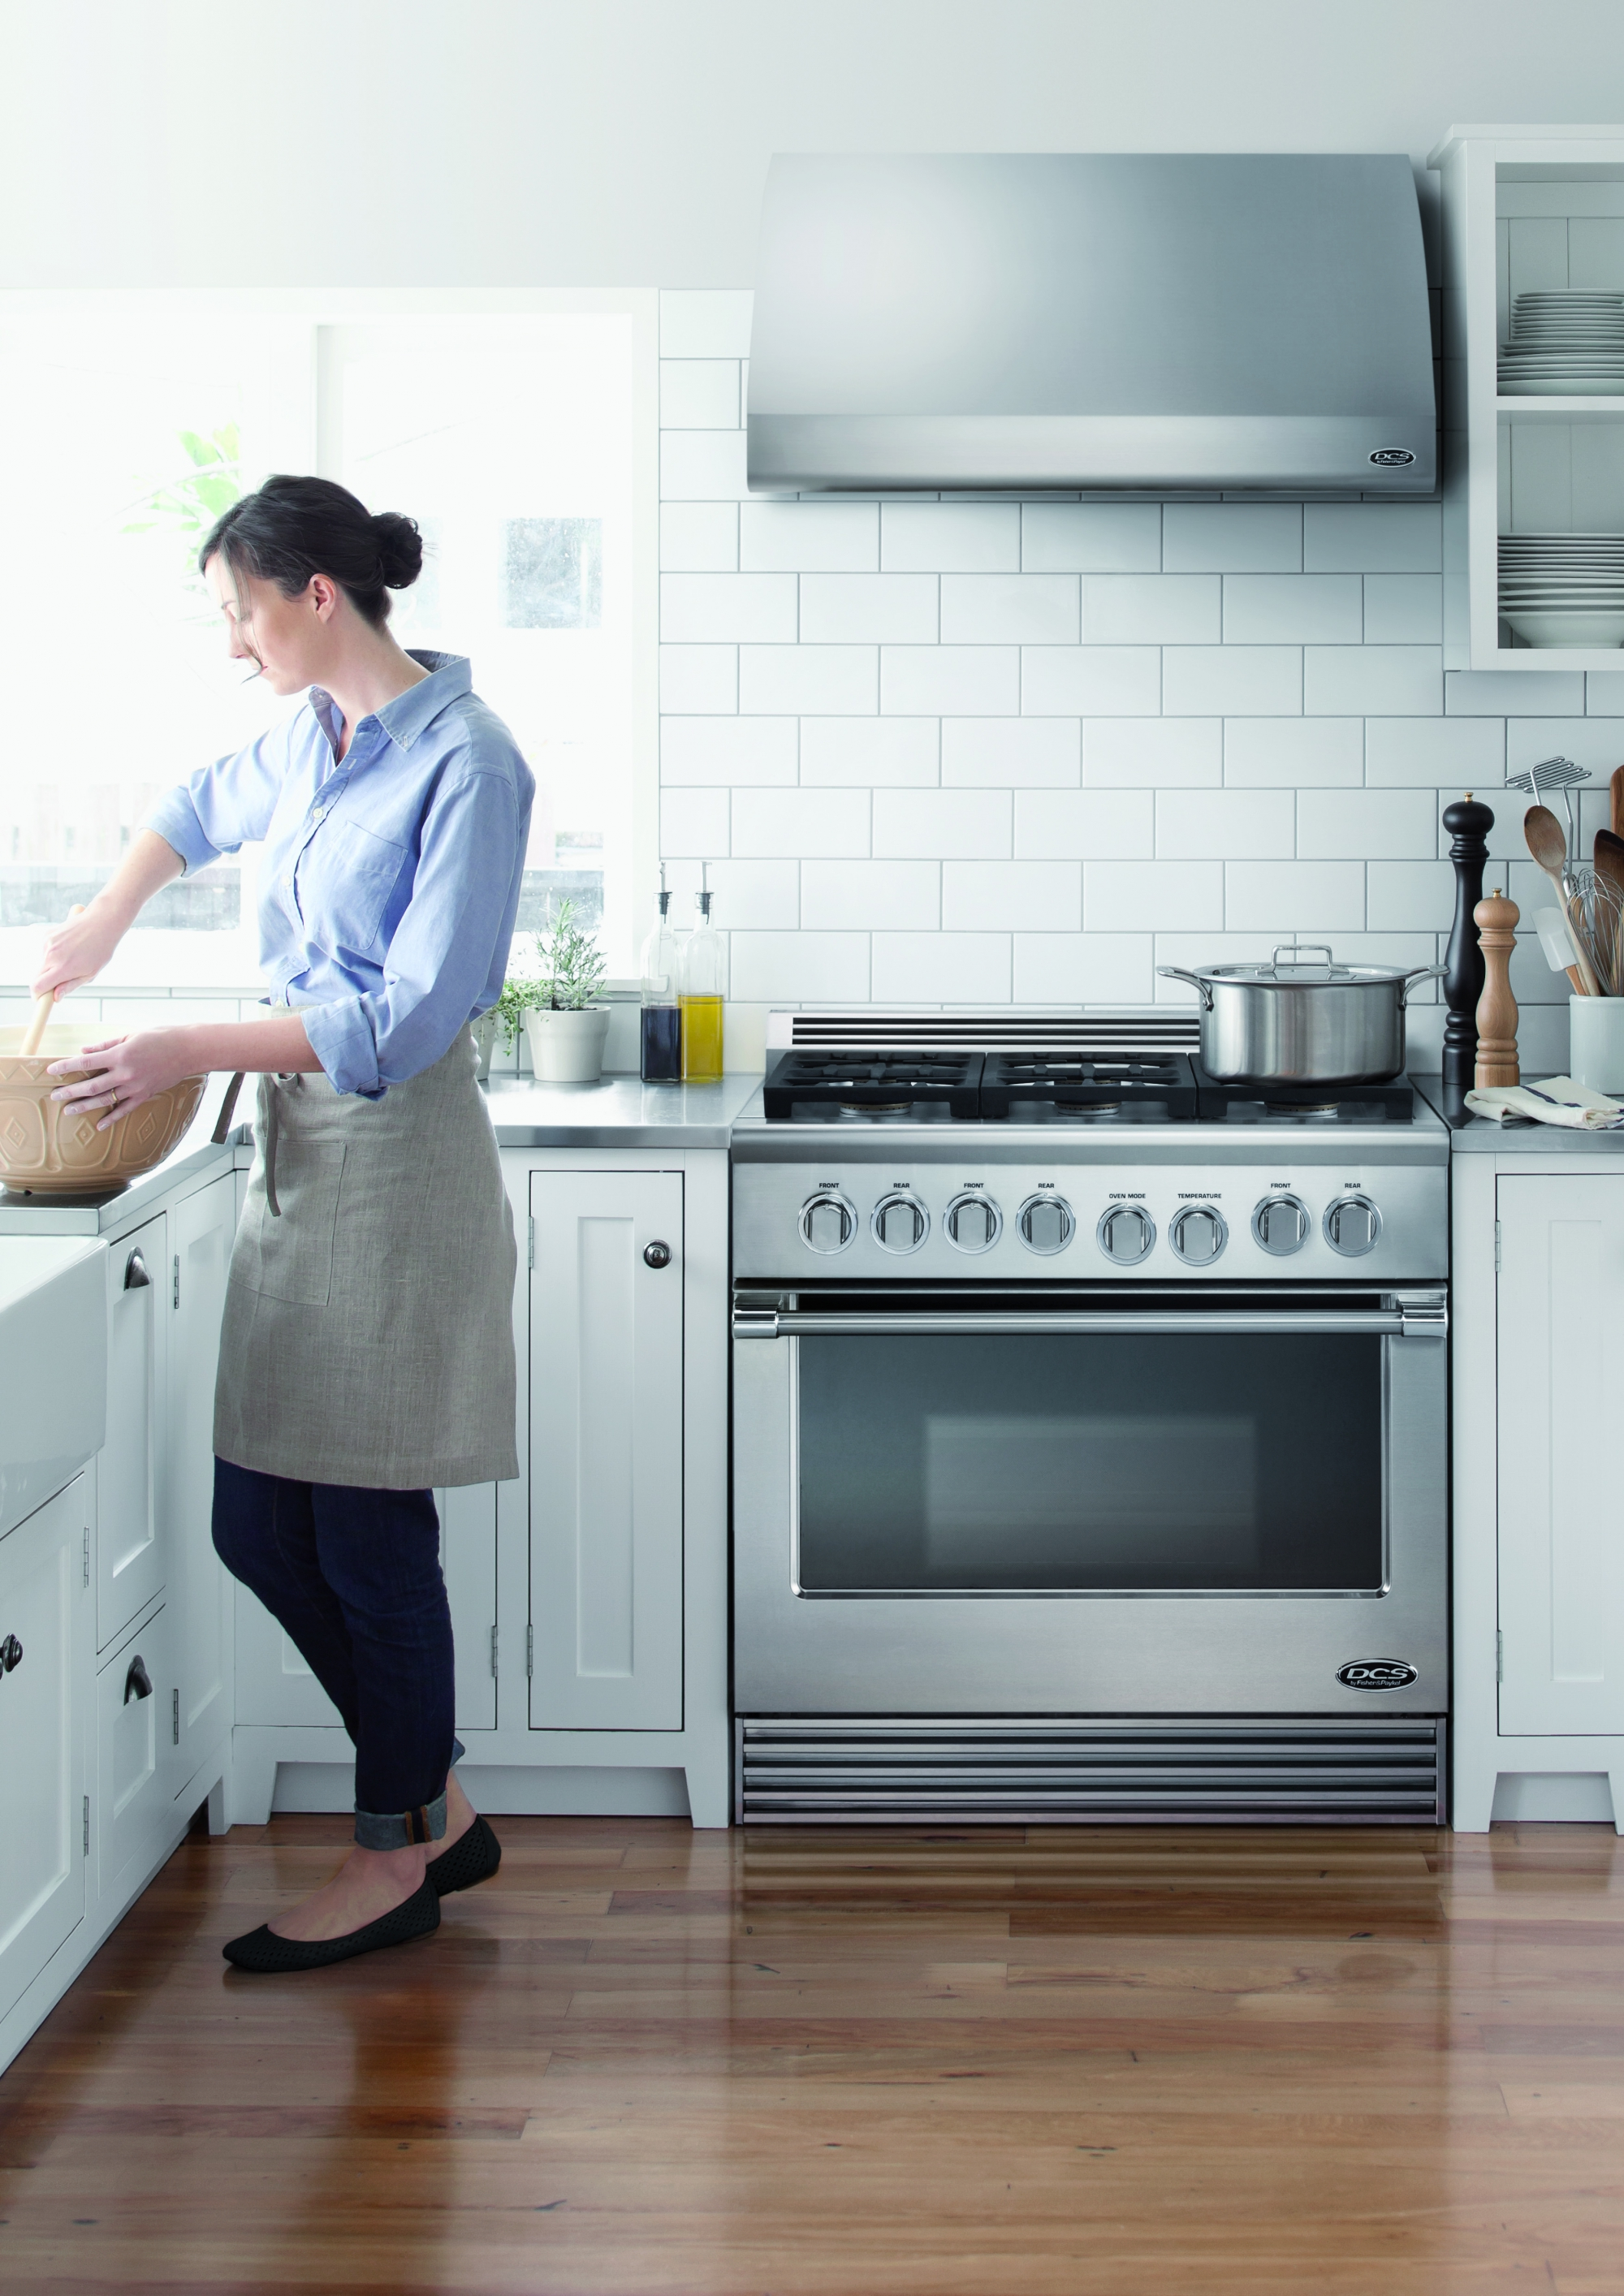 DCS By Fisher Amp Paykel Launches New Line Of Professional Kitchen Equipment For The Home